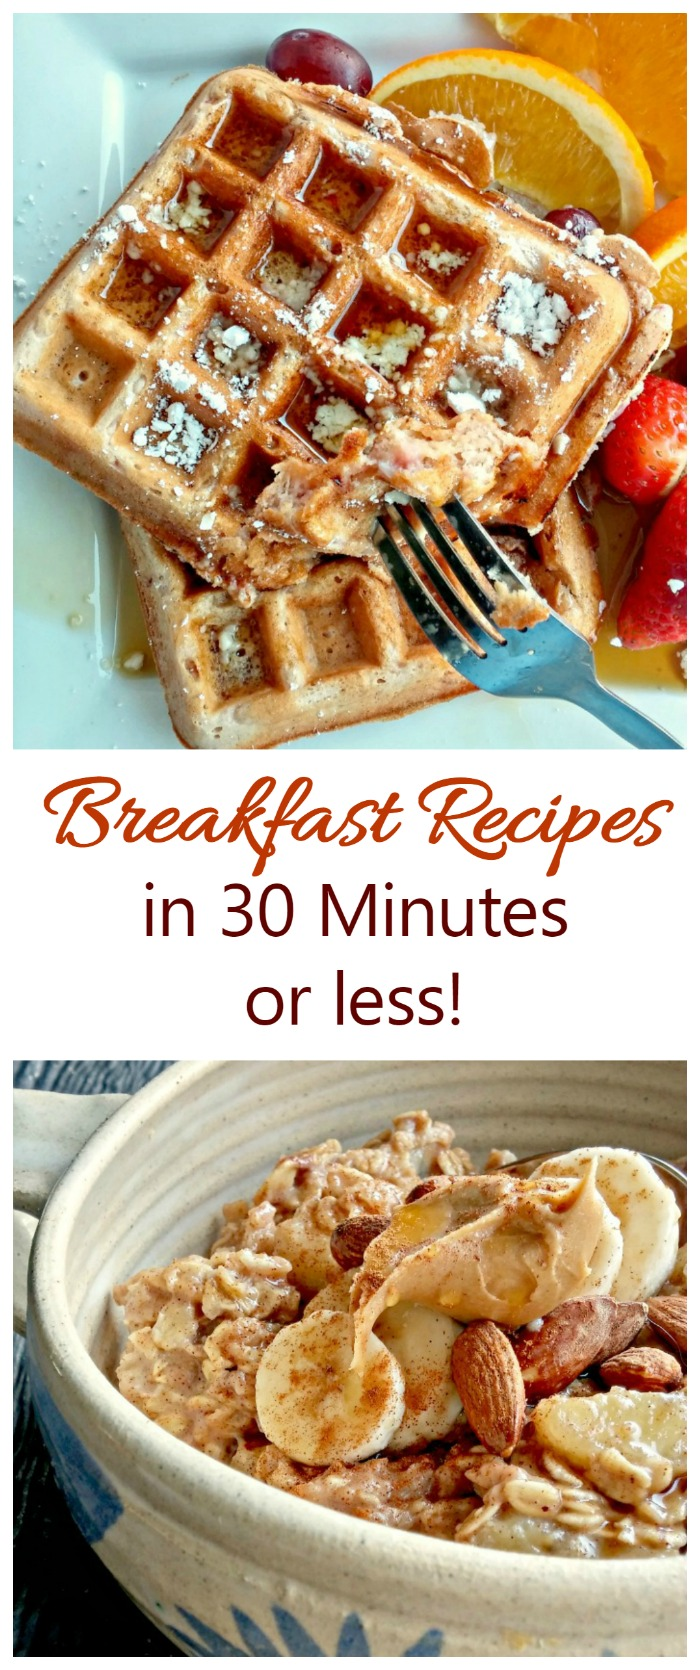 Get breakfast on the table in 30 minutes or less with these delicious recipes.